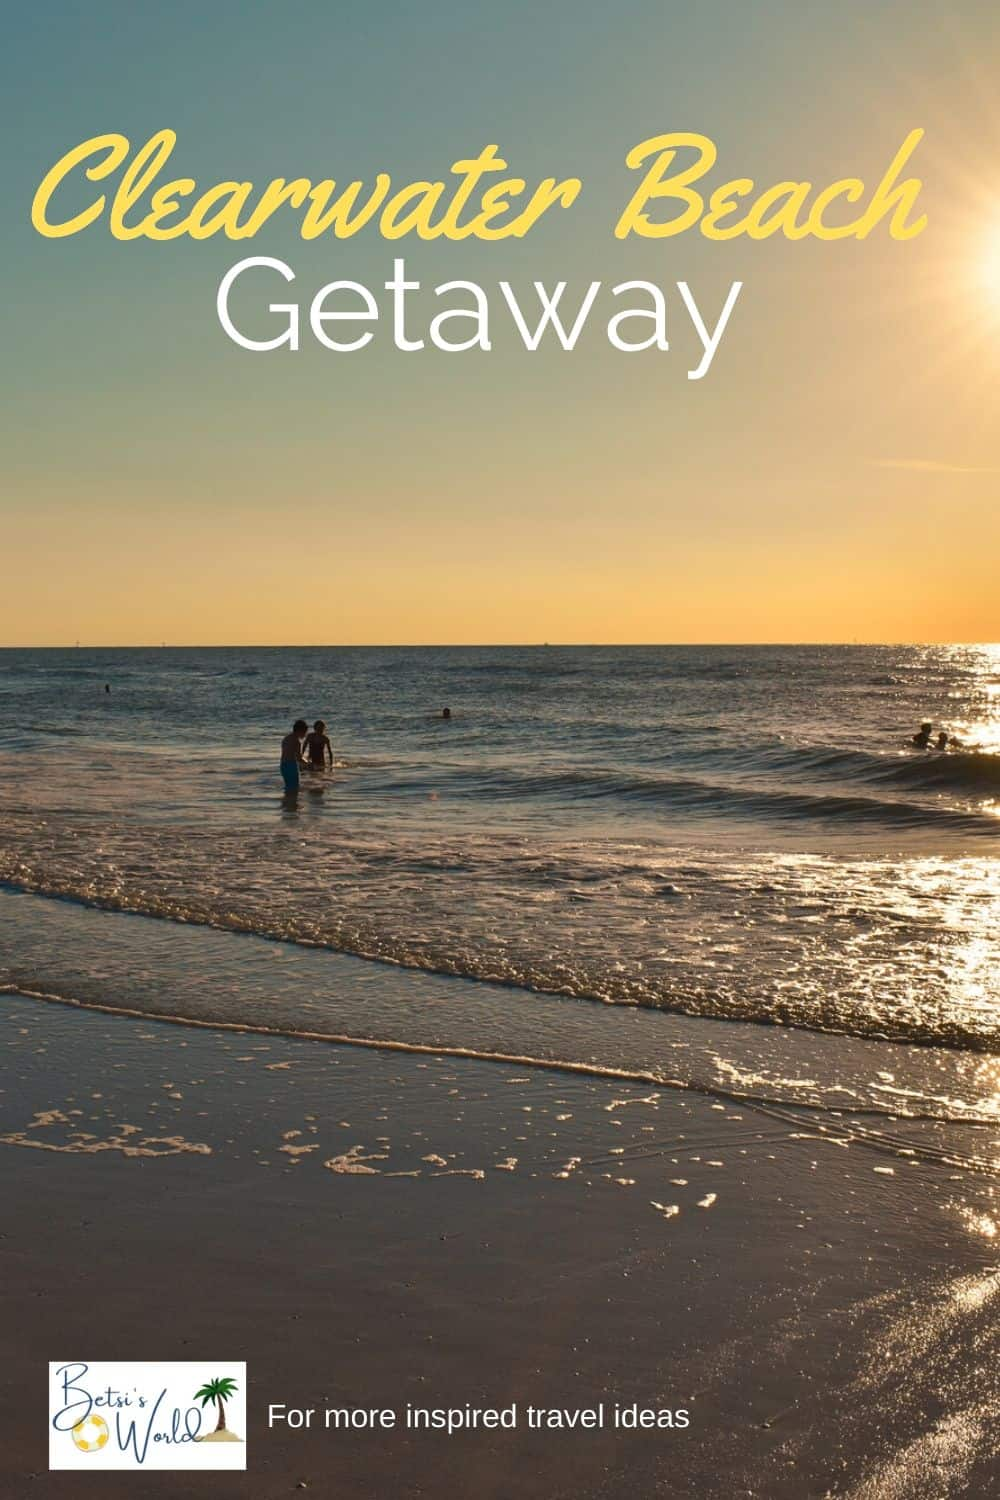 If You'reHeading to the Gulf Coast, Clearwater Beach Florida is home to attractions, dining options and experiences perfect for a romantic getaway. Check out our ideas for a top-notch romantic vacay for two! #couples #thingstodo #MYClearwater #BestBeachTown #ClearwaterBeach #Clearwater #Florida For more inspired travel ideas, visit www.betsiworld.